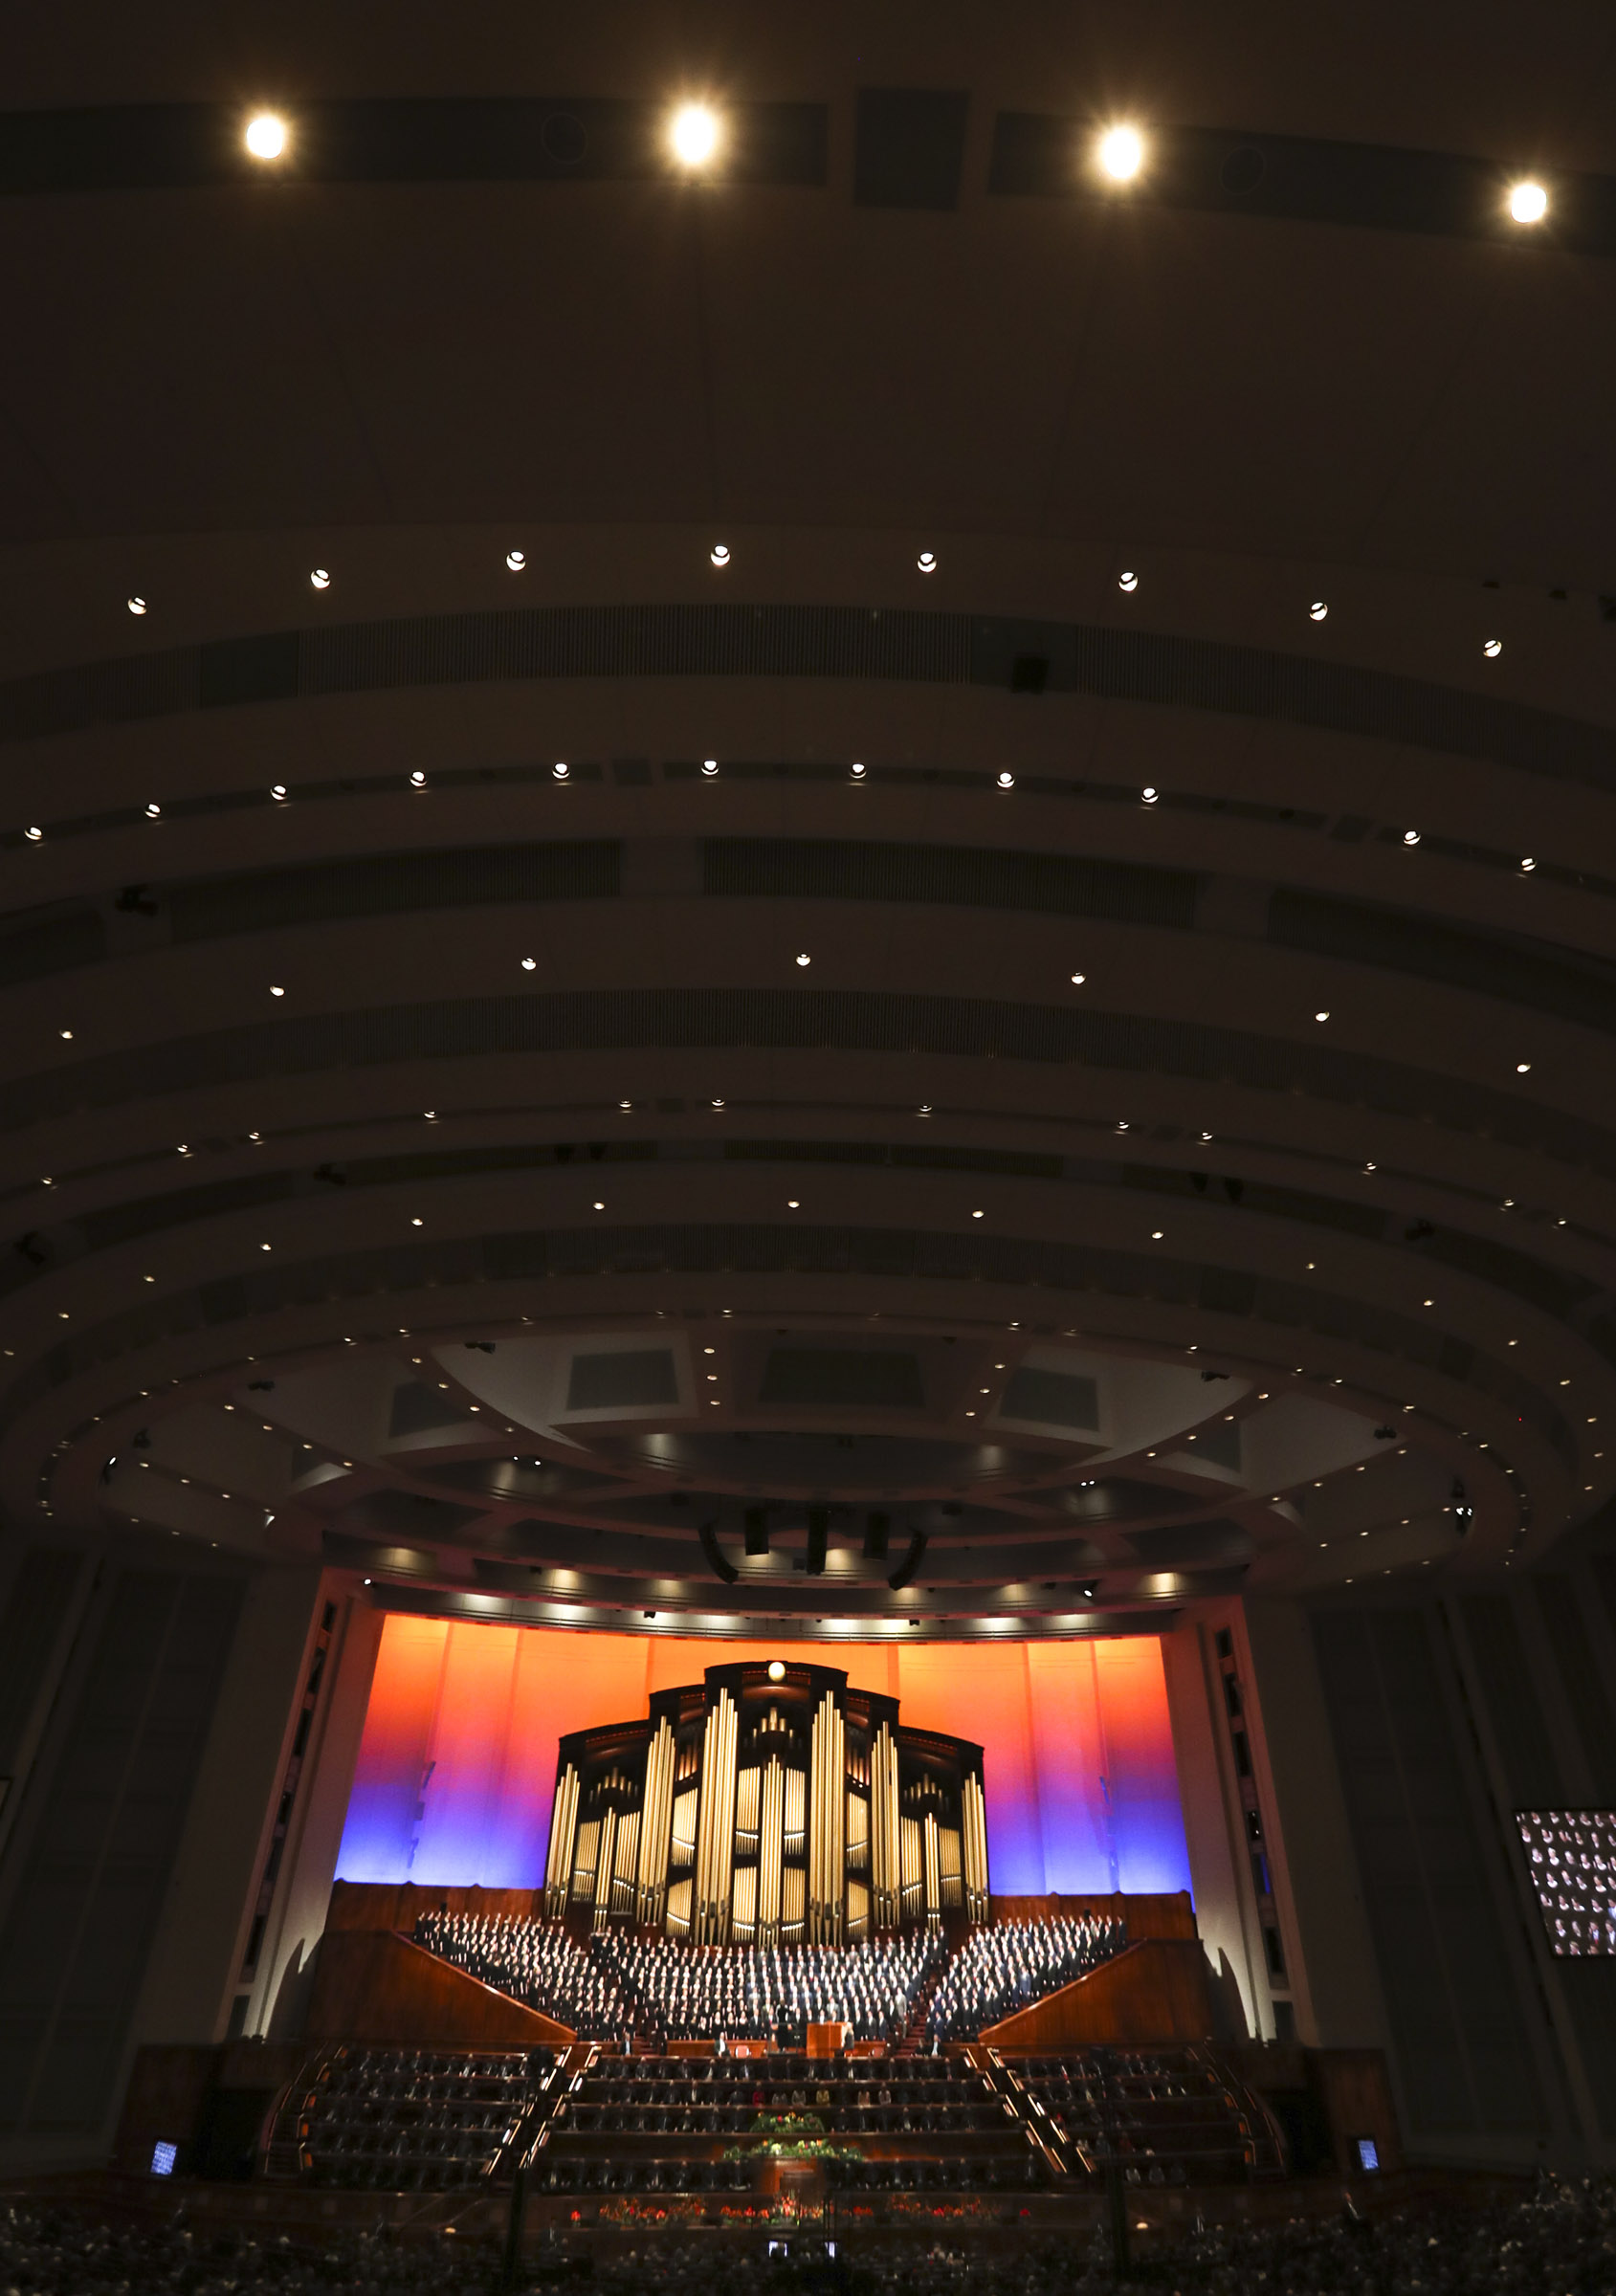 Conferencegoers attend the afternoon session of the 189th Annual General Conference of The Church of Jesus Christ of Latter-day Saints at the Conference Center in Salt Lake City on Saturday, April 6, 2019.